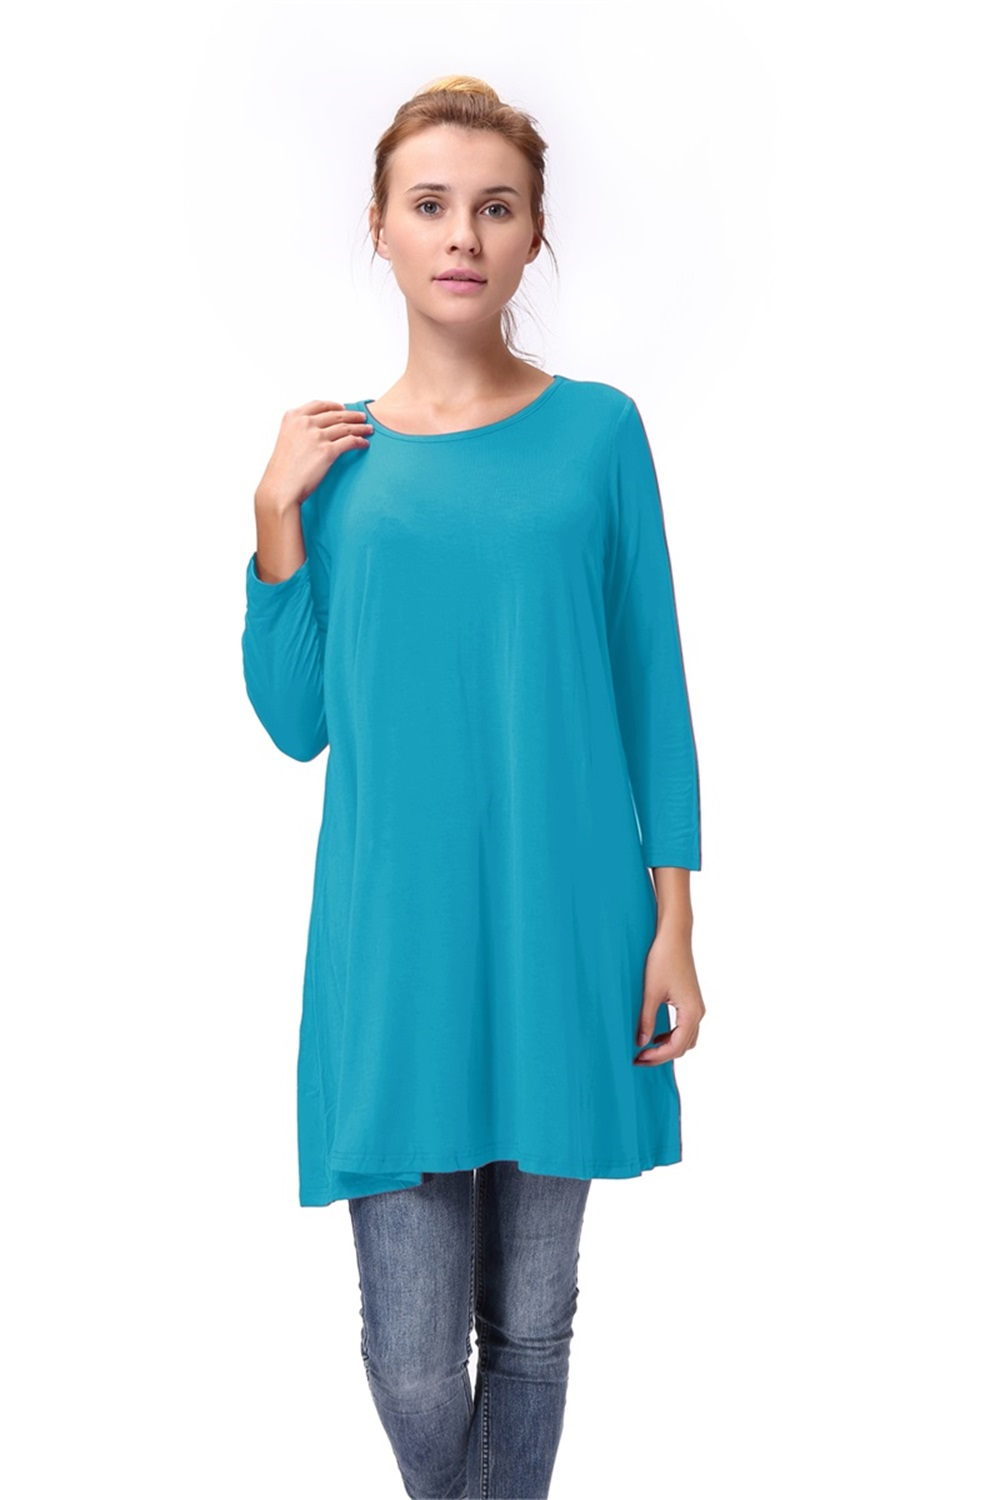 Women-039-s-Long-Tunic-Top-3-4-Sleeve-Dolman-Boat-Neck-USA-Dress-S-M-L-1X-2X-3X-PLUS thumbnail 29